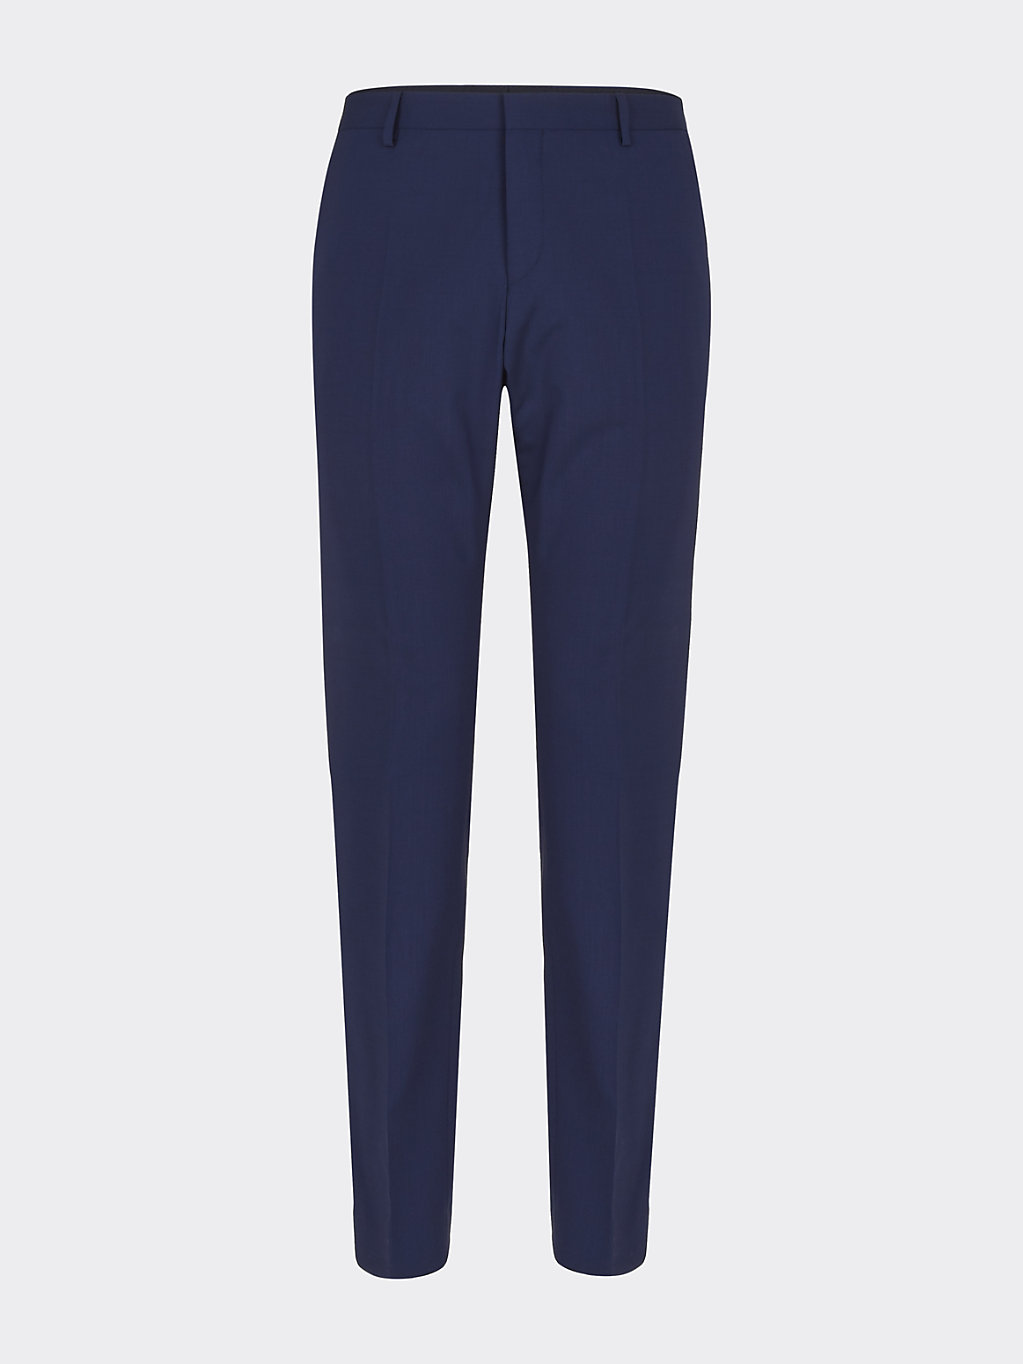 Tommy Hilfiger - Suit Separate Regular Fit Trousers - 5